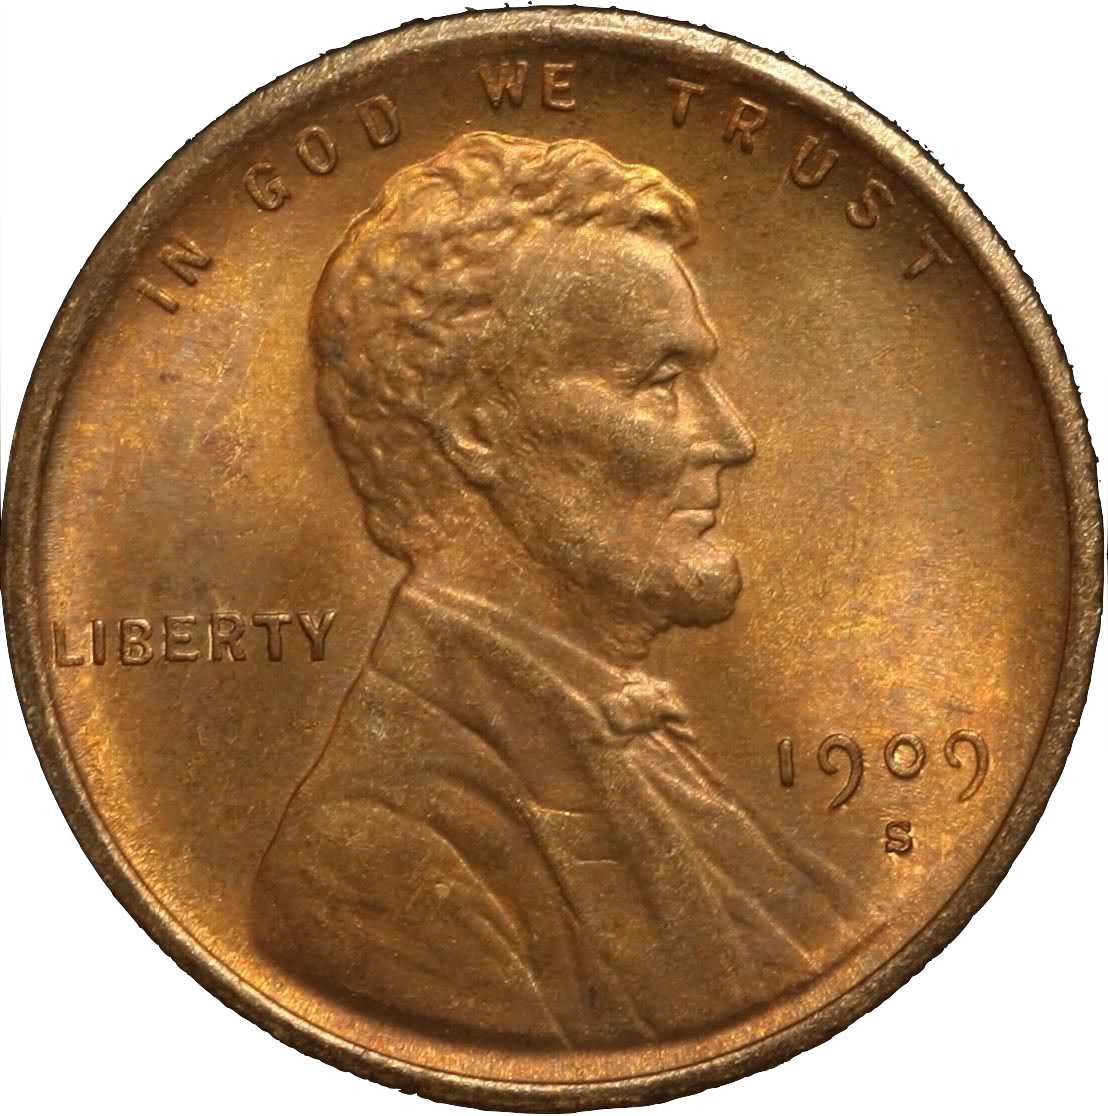 Png coins value. File s vdb lincoln